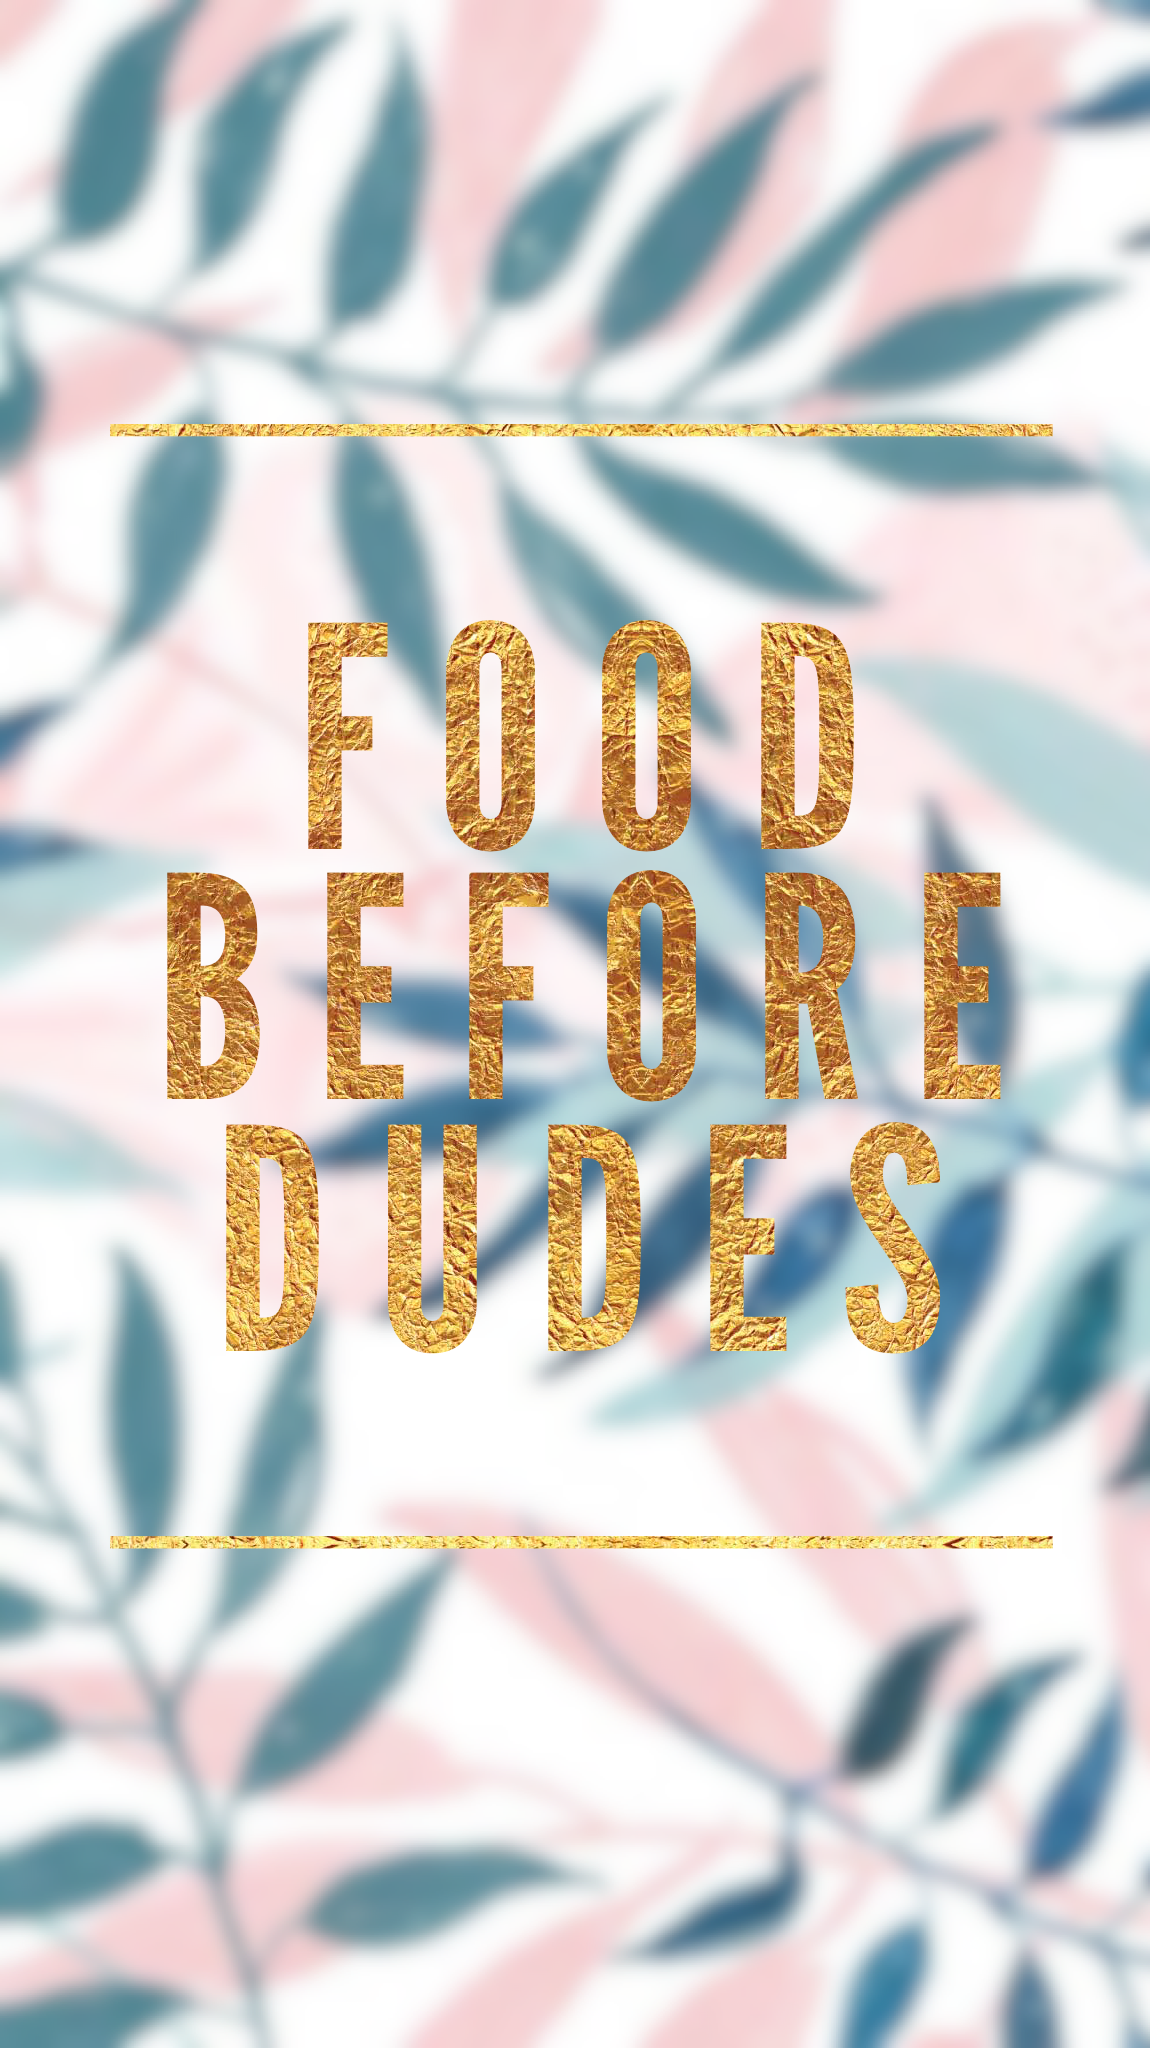 Quotes Wallpapers Food Dudes Blurry Gold Wallpaper Quotes Song Lyrics Wallpaper Quotes